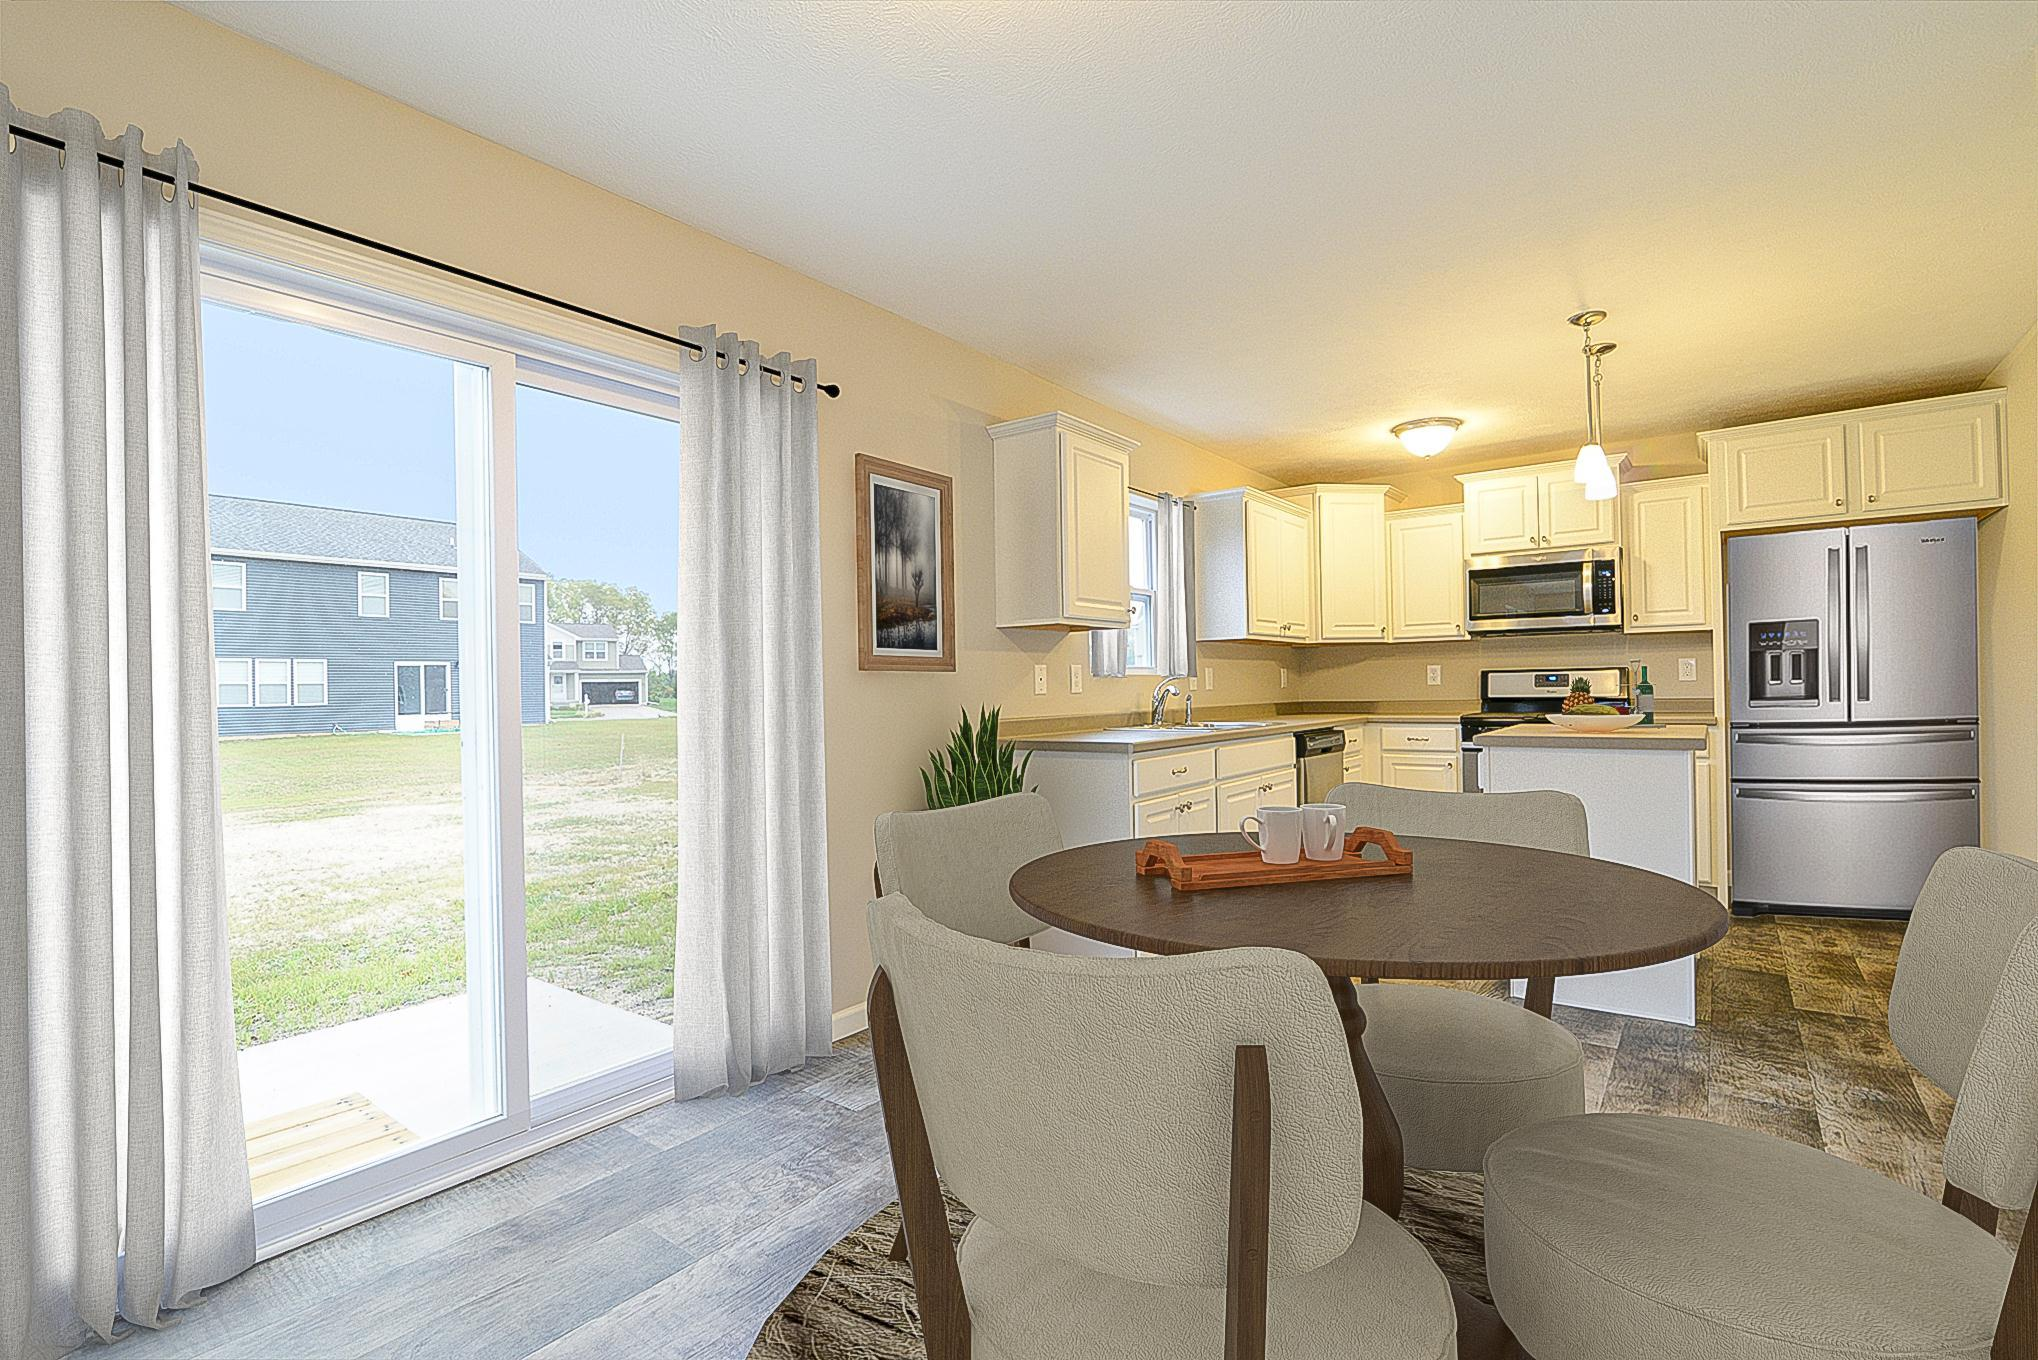 Kitchen featured in the Elements 1700 By Allen Edwin Homes in South Bend, IN